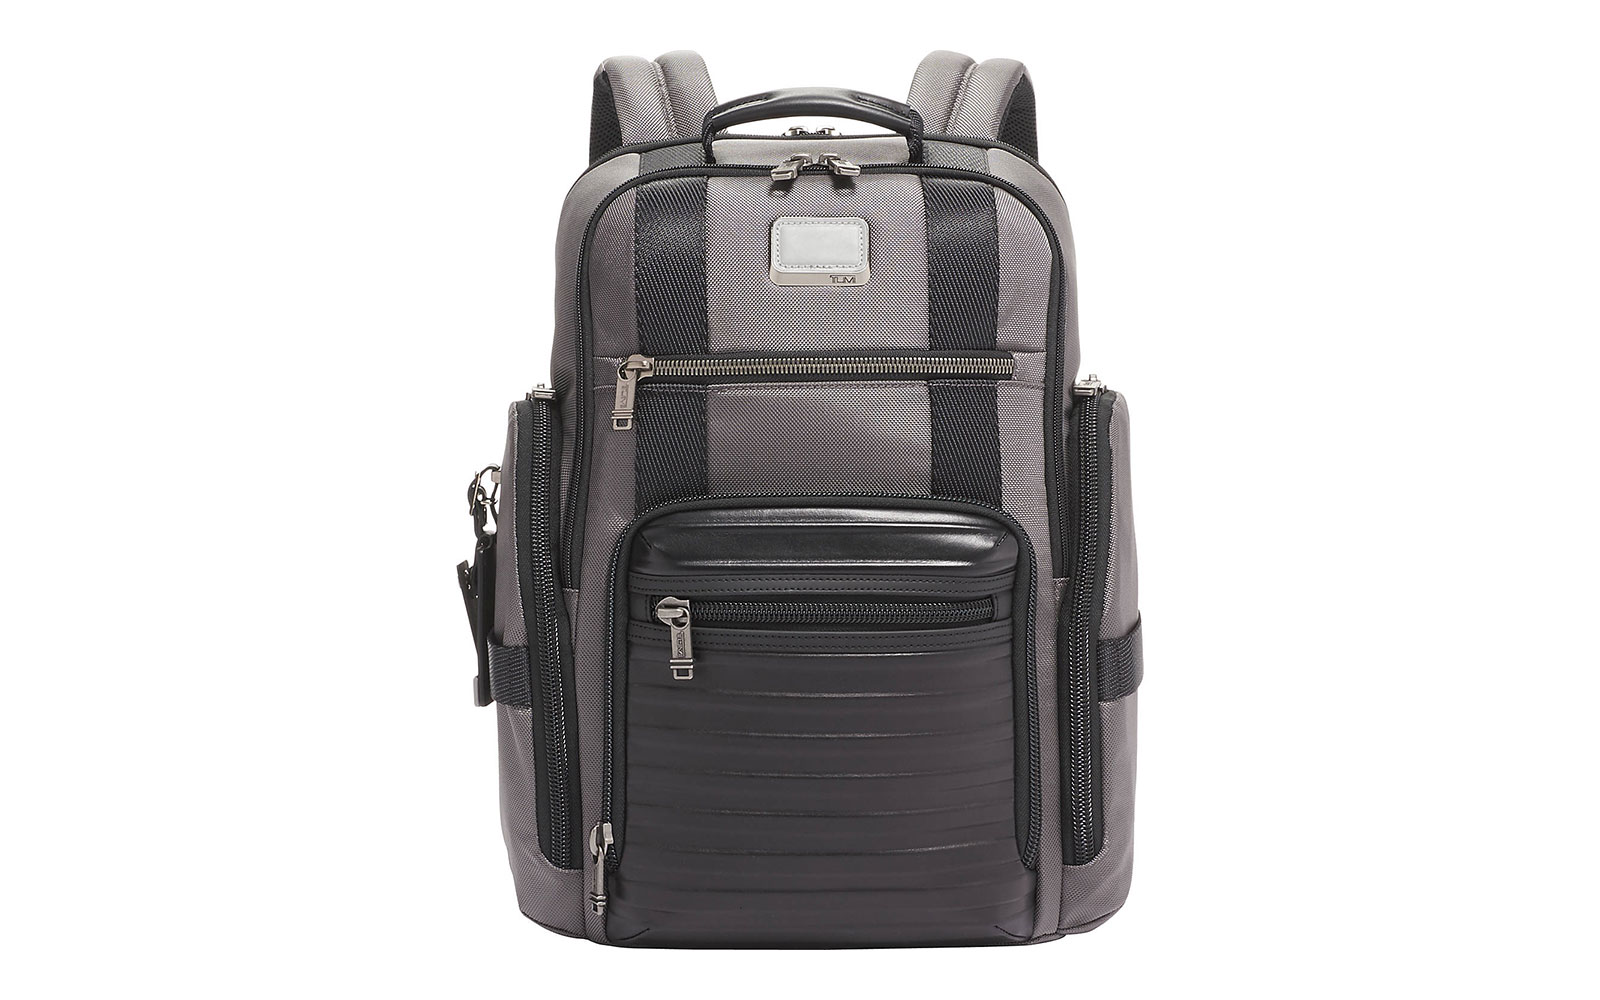 Tumi Alpha Bravo Sheppard Deluxe Laptop Brief Pack